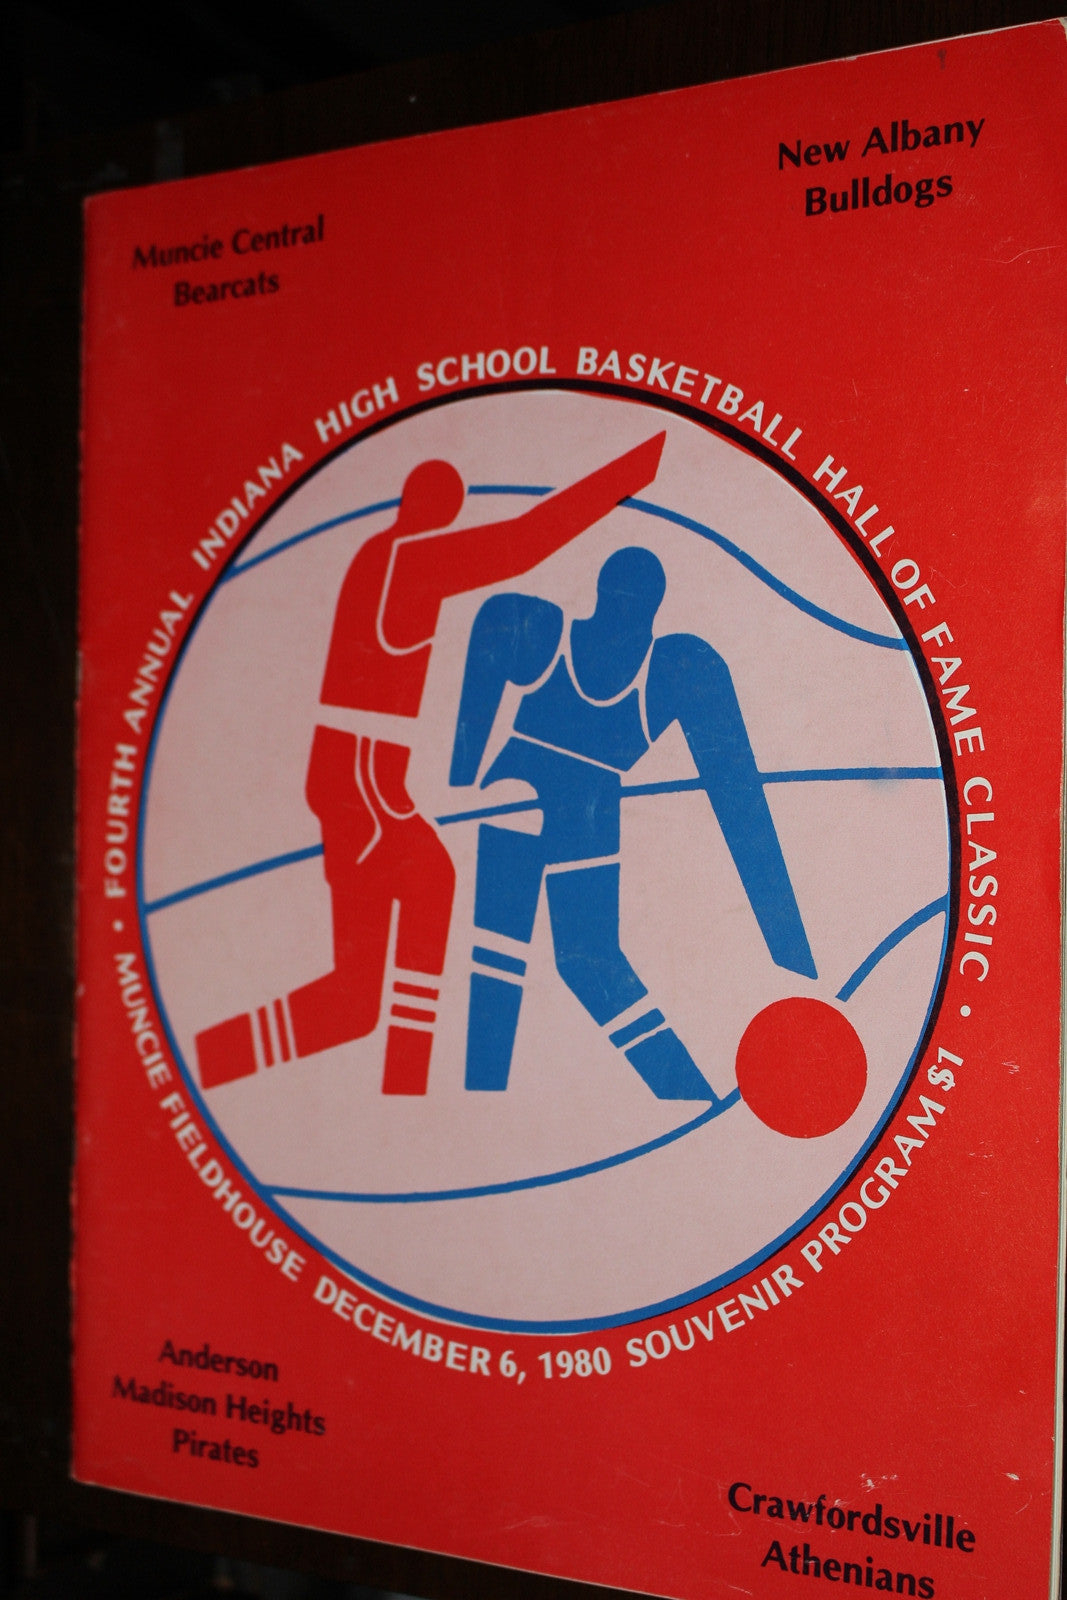 1980 Indiana High School Basketball Hall of Fame Classic Program - Vintage Indy Sports